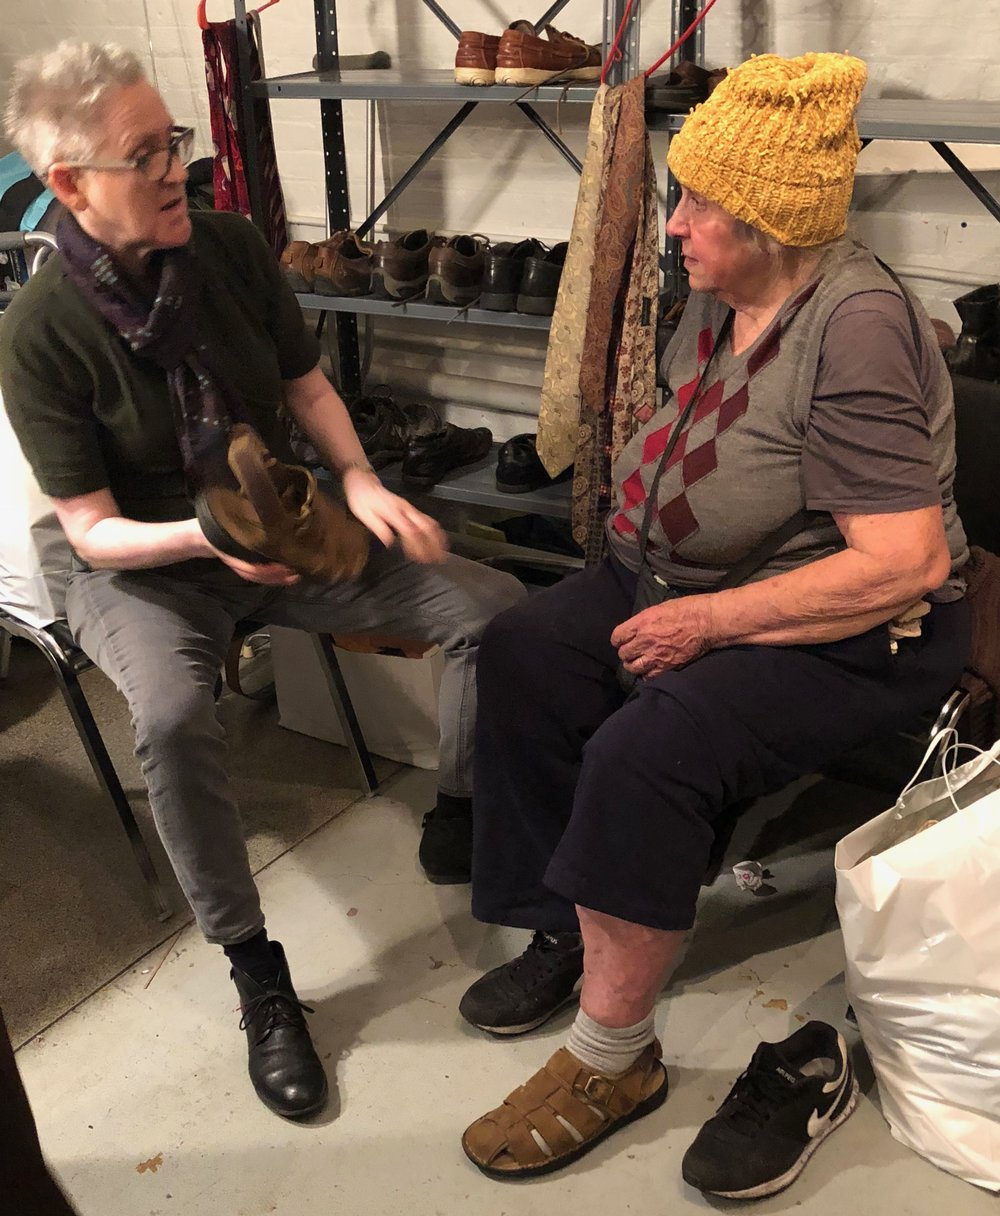 Two Saint Mary's parishioners have a serious discussion about footwear at the Drop-in Day.   Photo: Brother Thomas, SSF